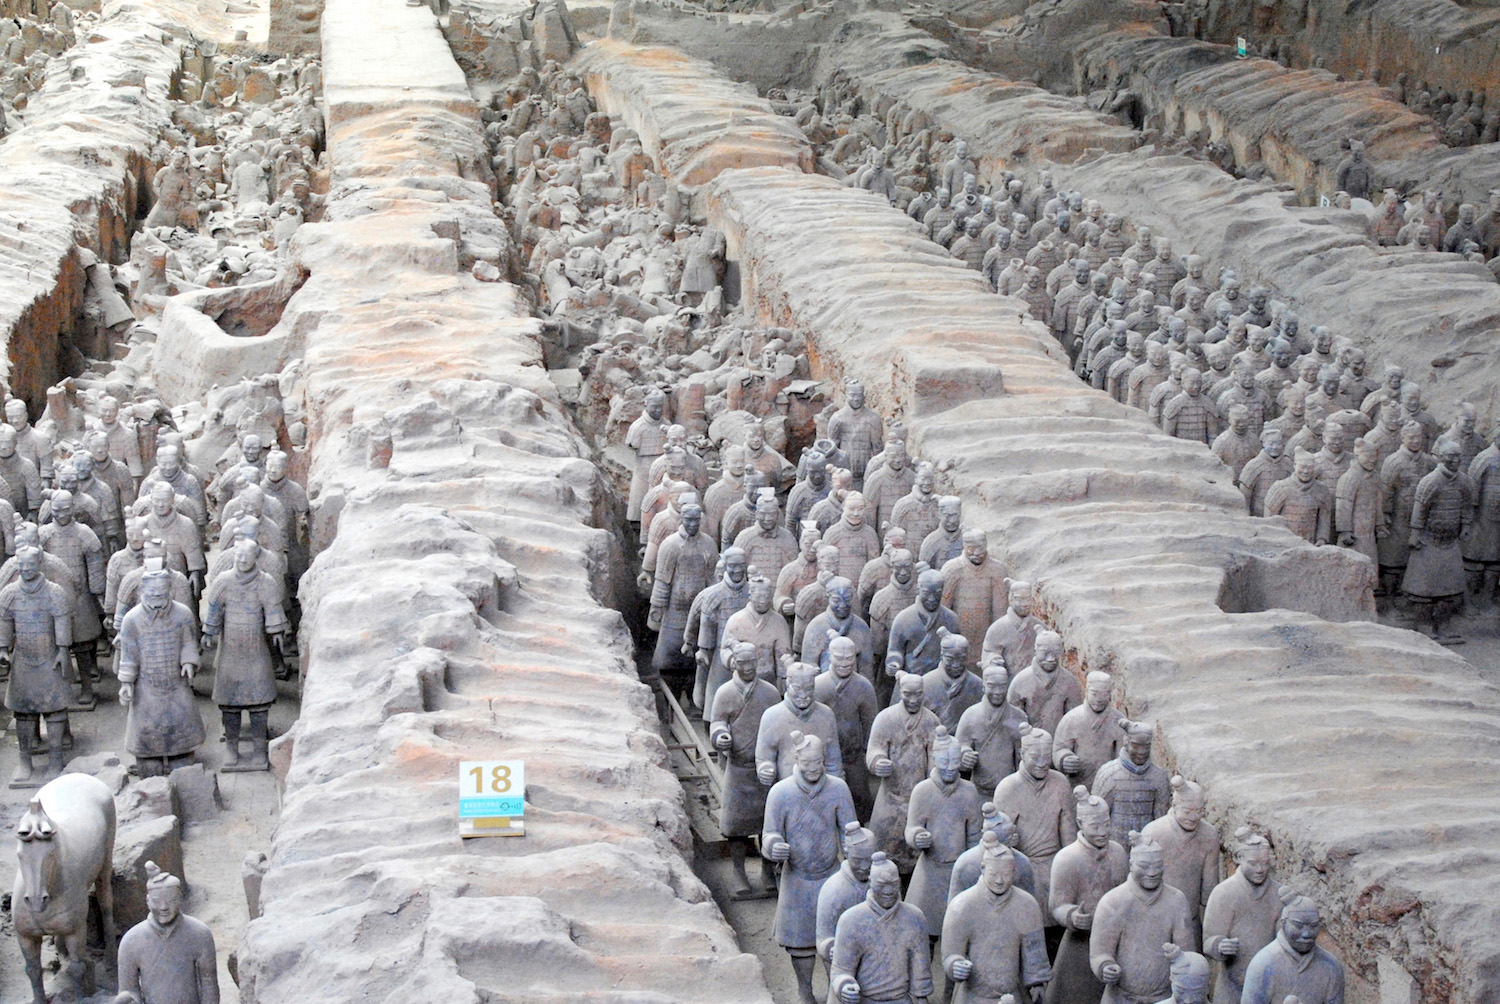 Terracotta Army in Xi'an China